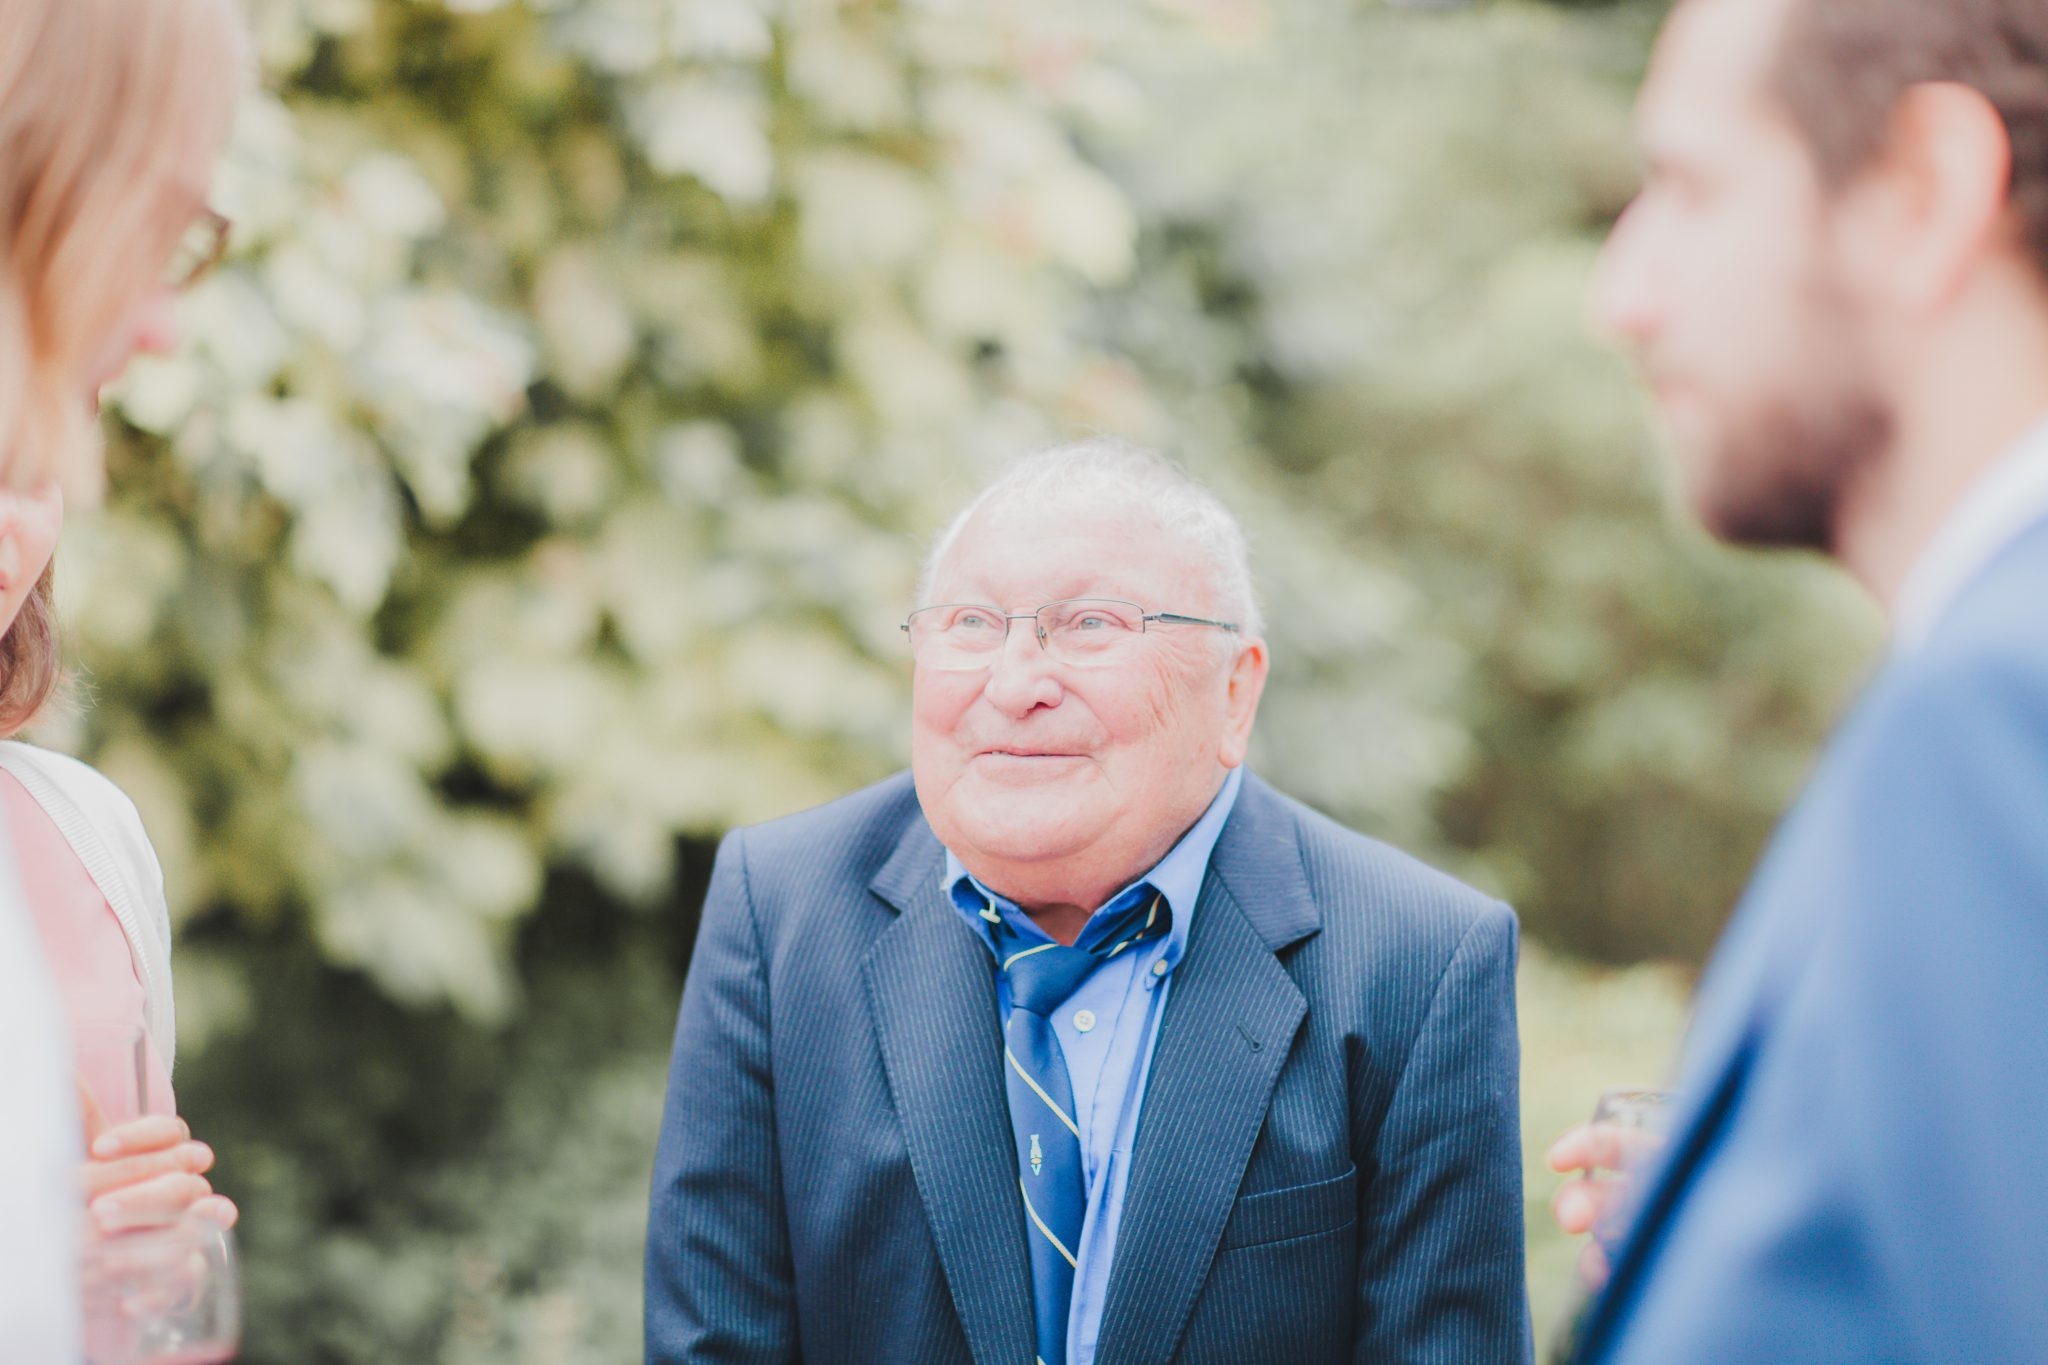 Granddad smiling at his grandchilds wedding day.